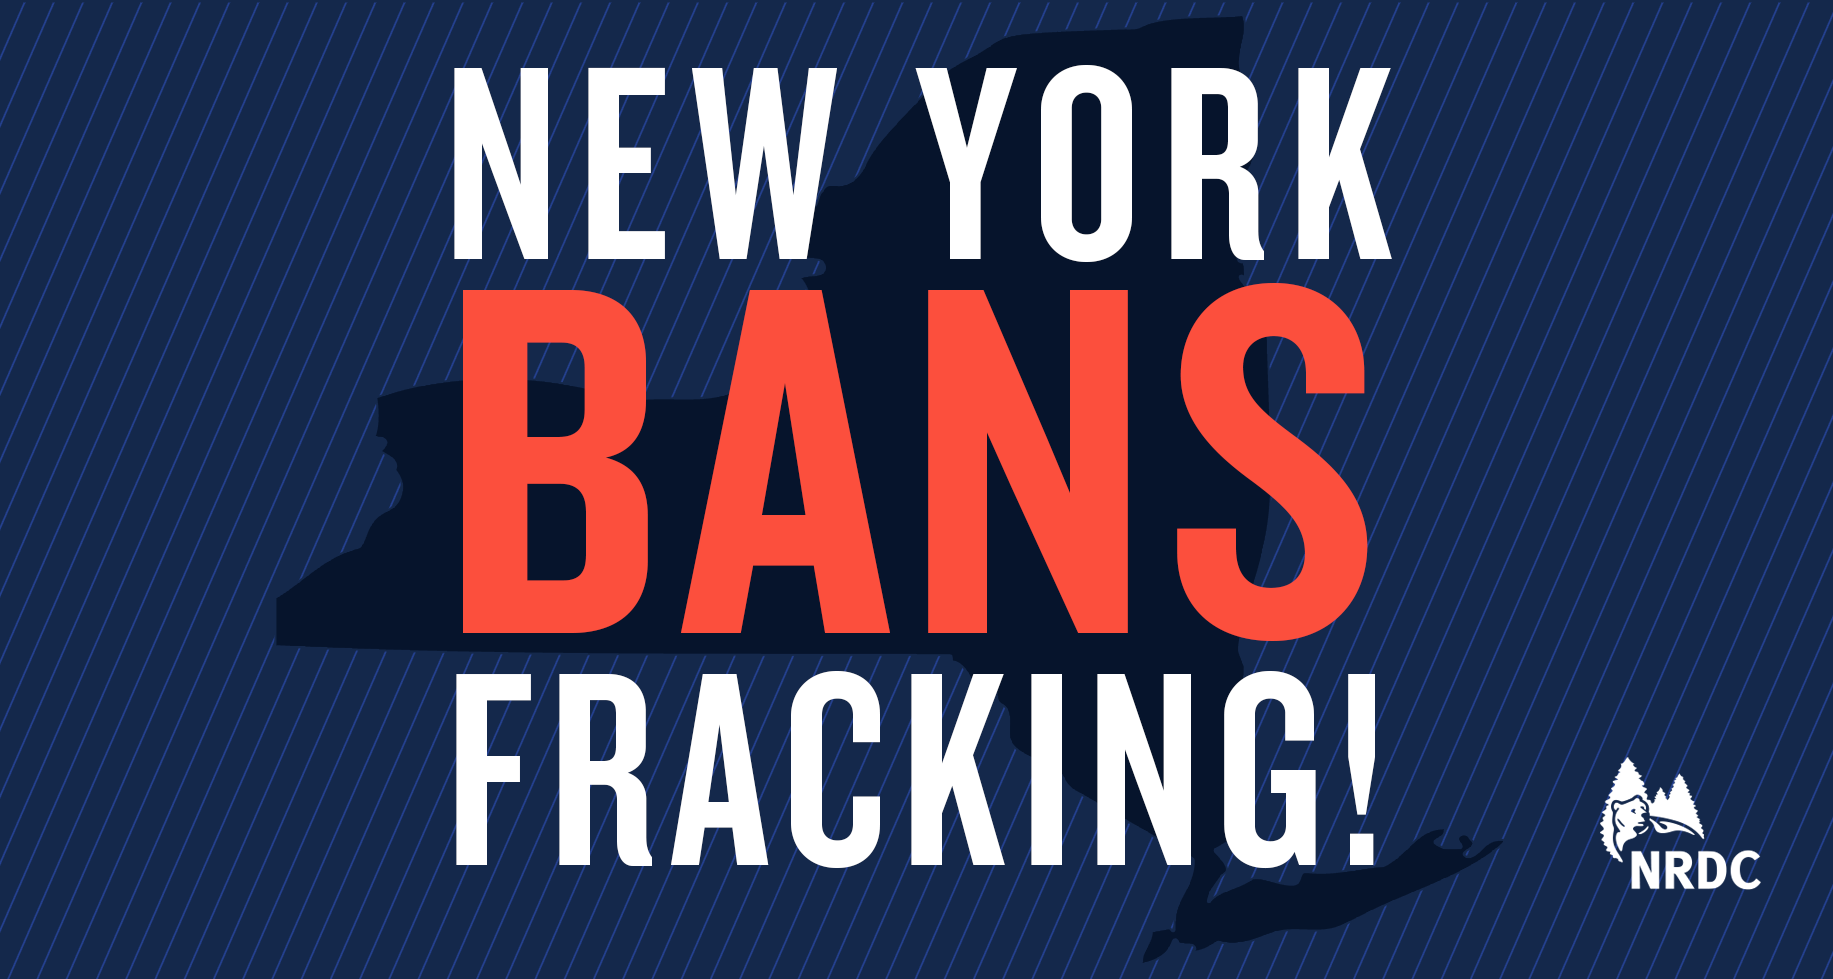 RT @NRDC: HUGE NEWS! @NYGovCuomo bans #fracking in New York! http://t.co/ihQ8UjQApW http://t.co/ZtJOw0DuFK